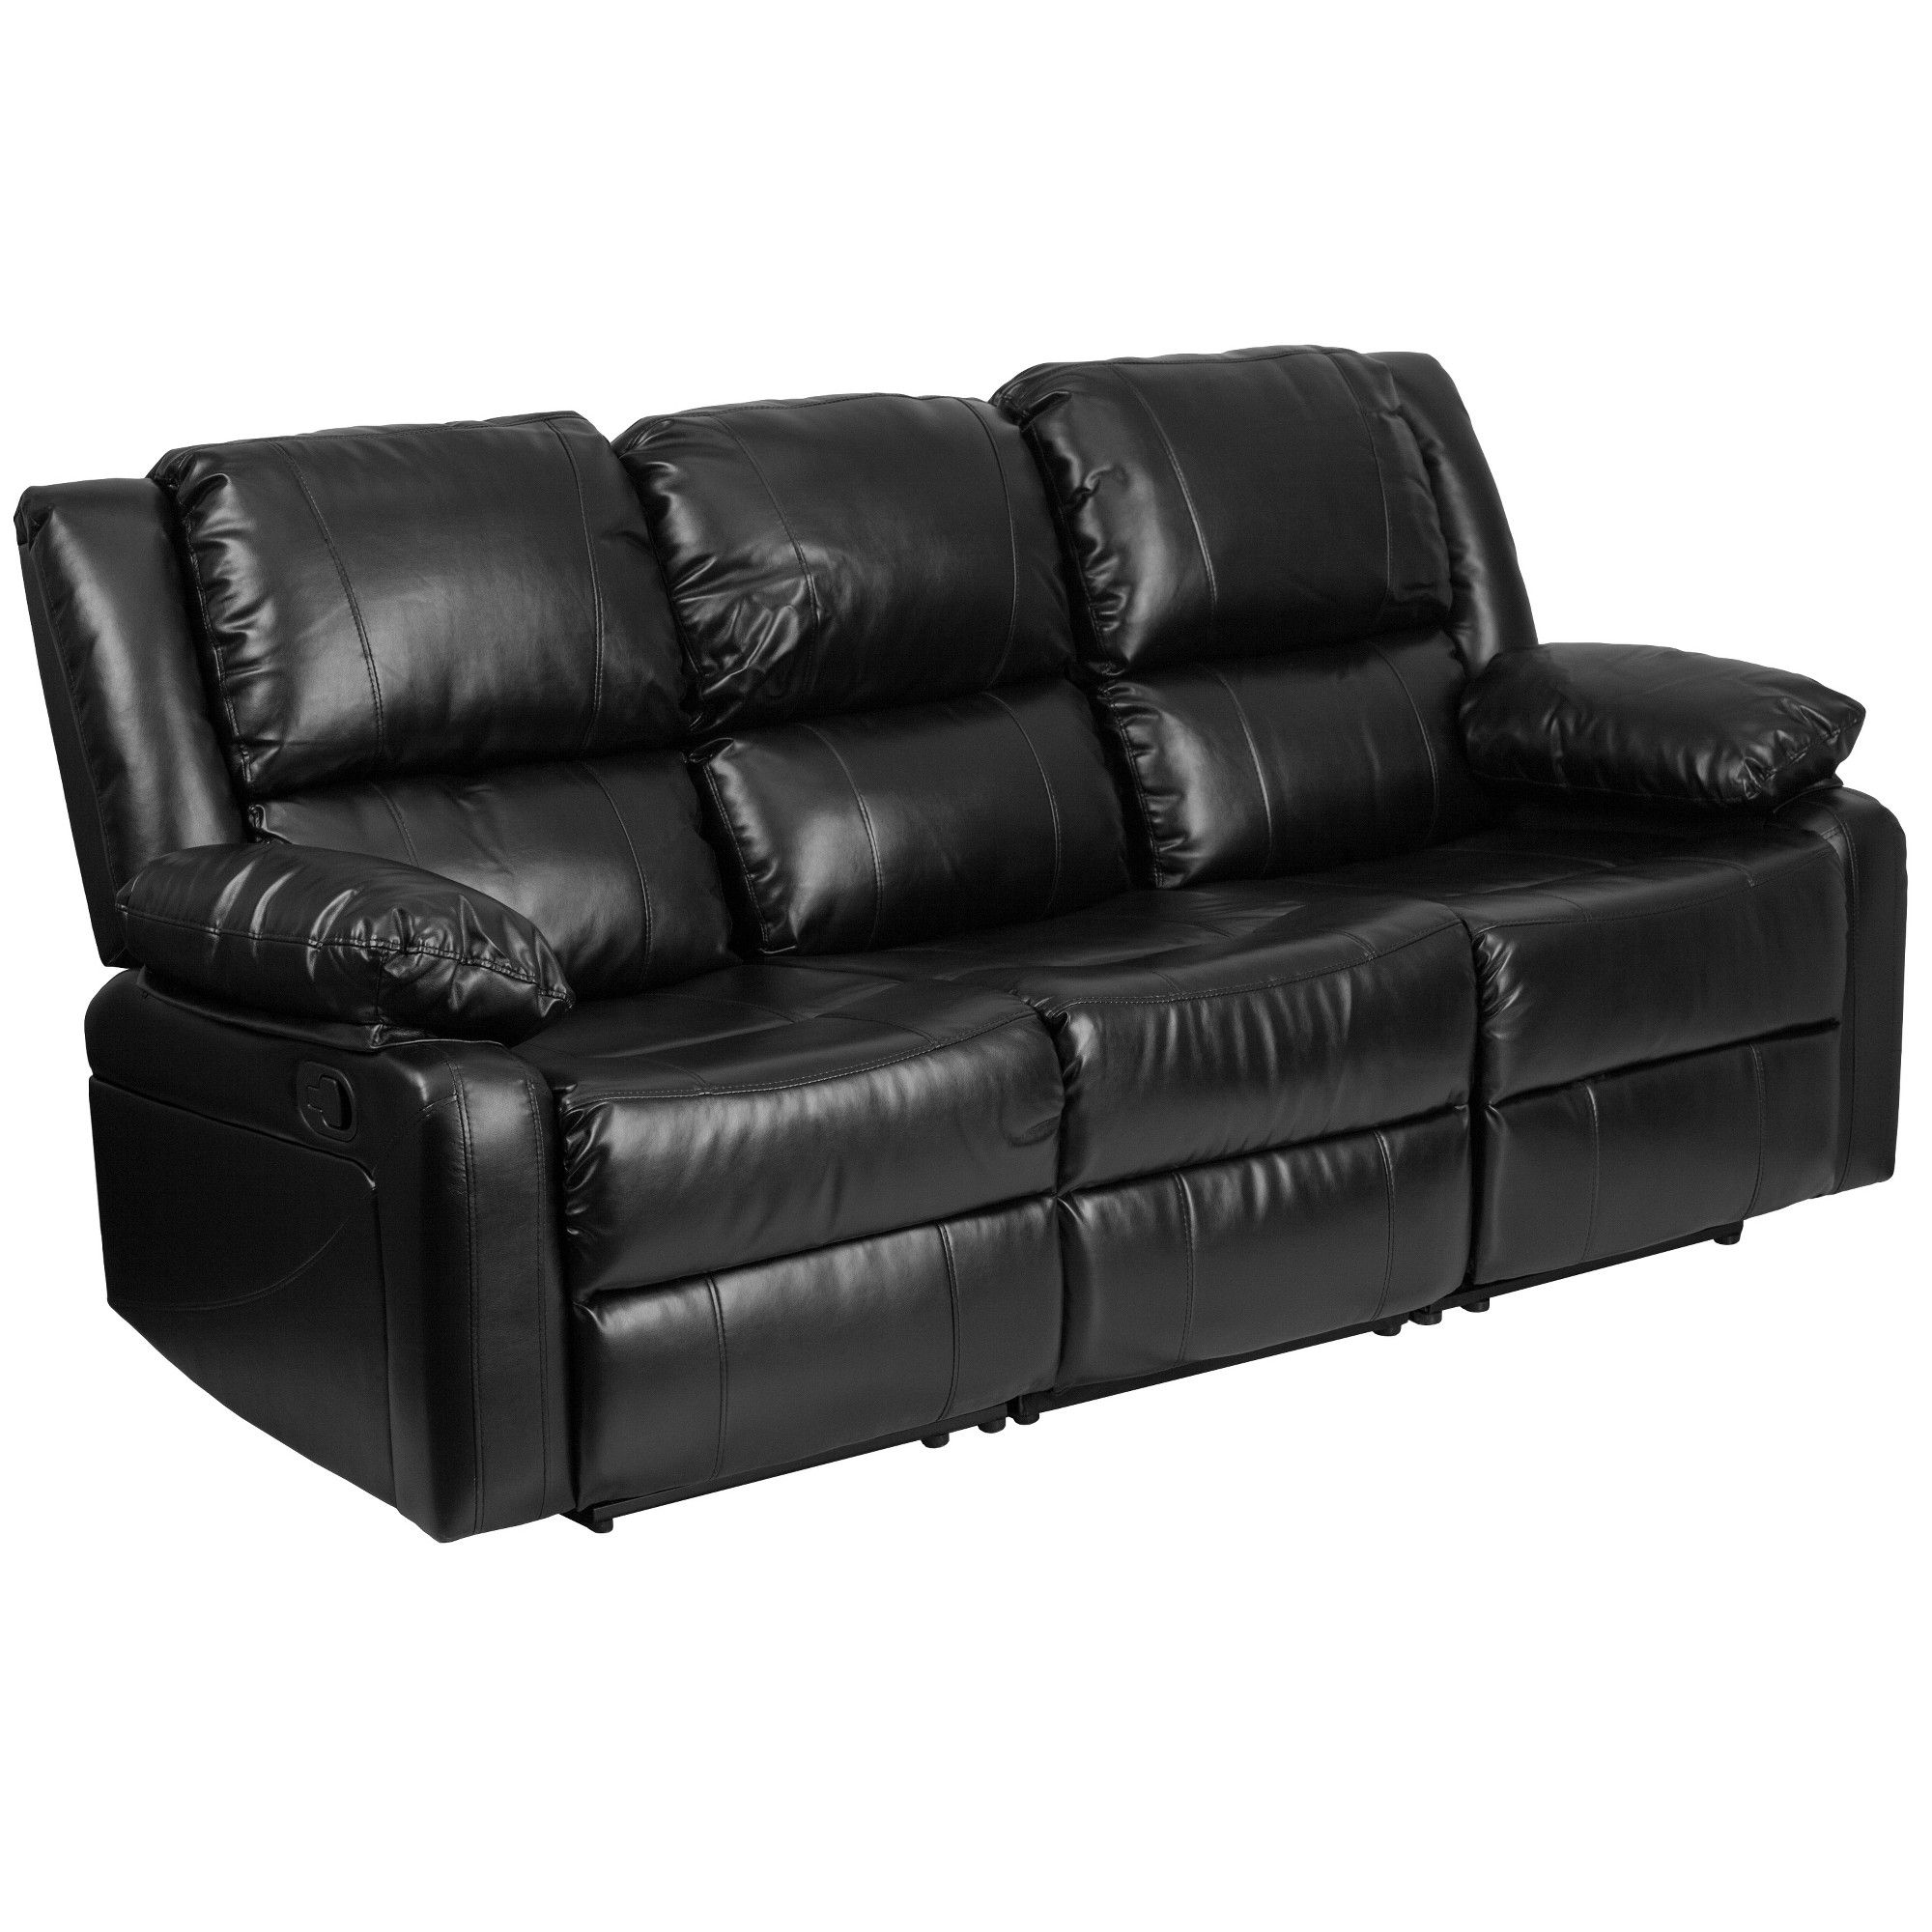 Riverstone Furniture Collection Recliner Sofa Leather Black Black Leather Sofas Leather Reclining Sofa Black Leather Recliner